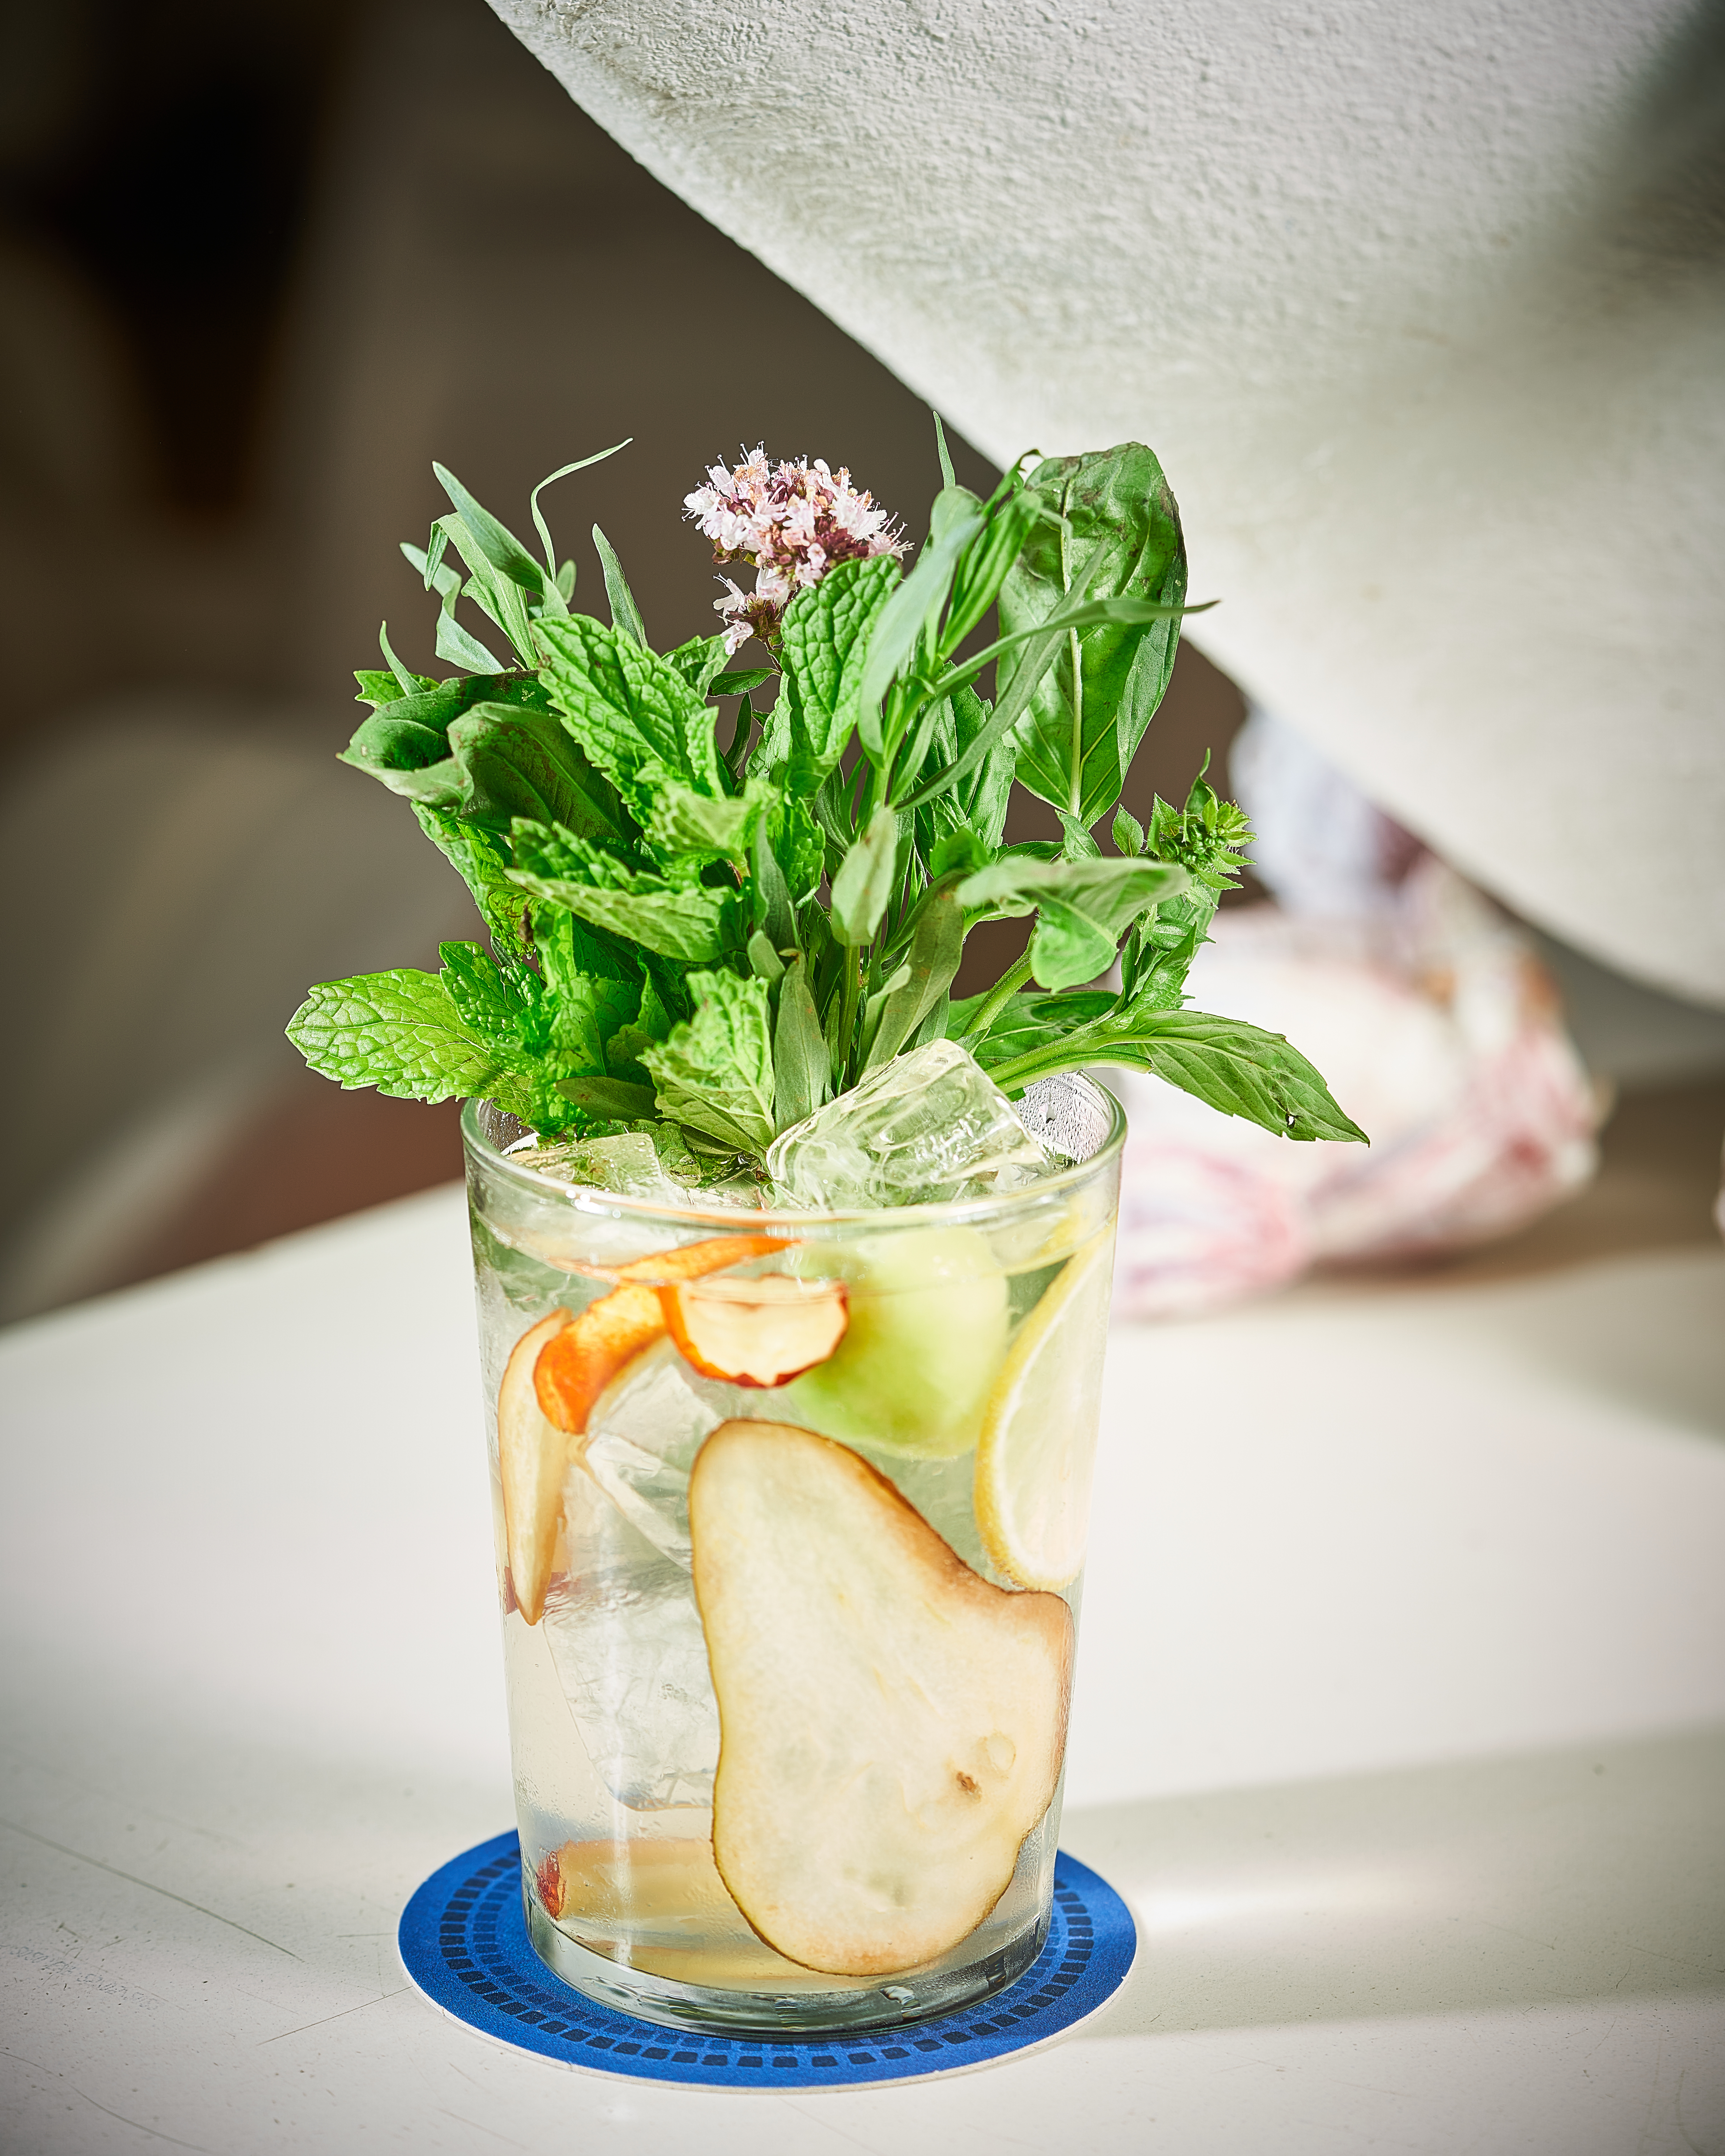 A clear cocktail in short glass filled with fruit and a bouquet of herbs including mint and basil.